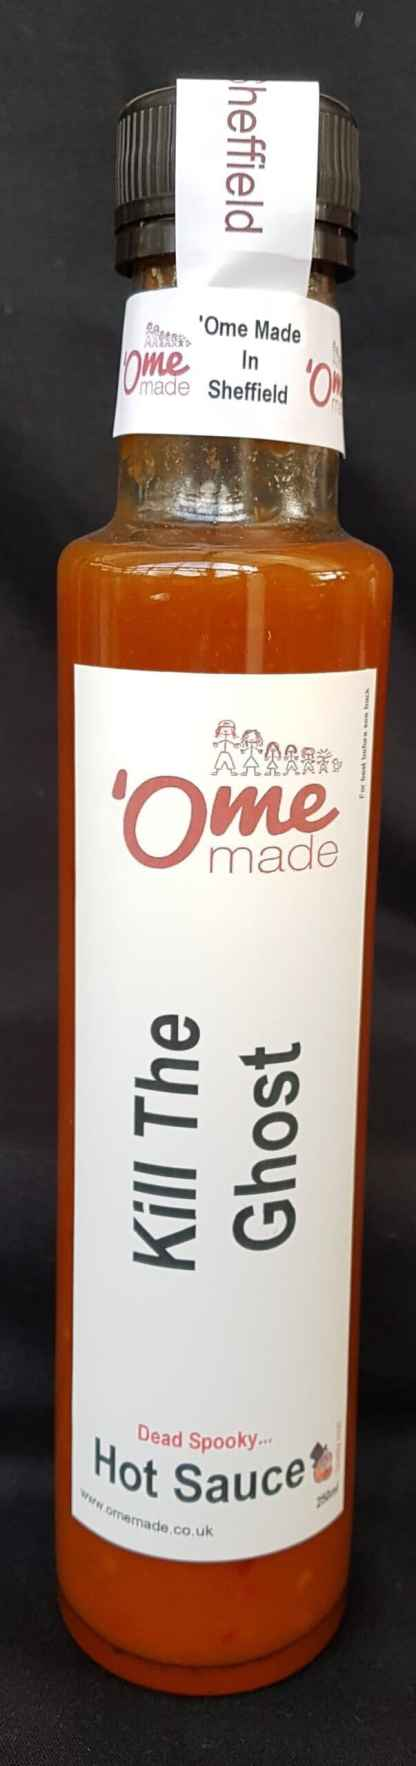 Kill The Ghost Hot Sauce by Ome Made